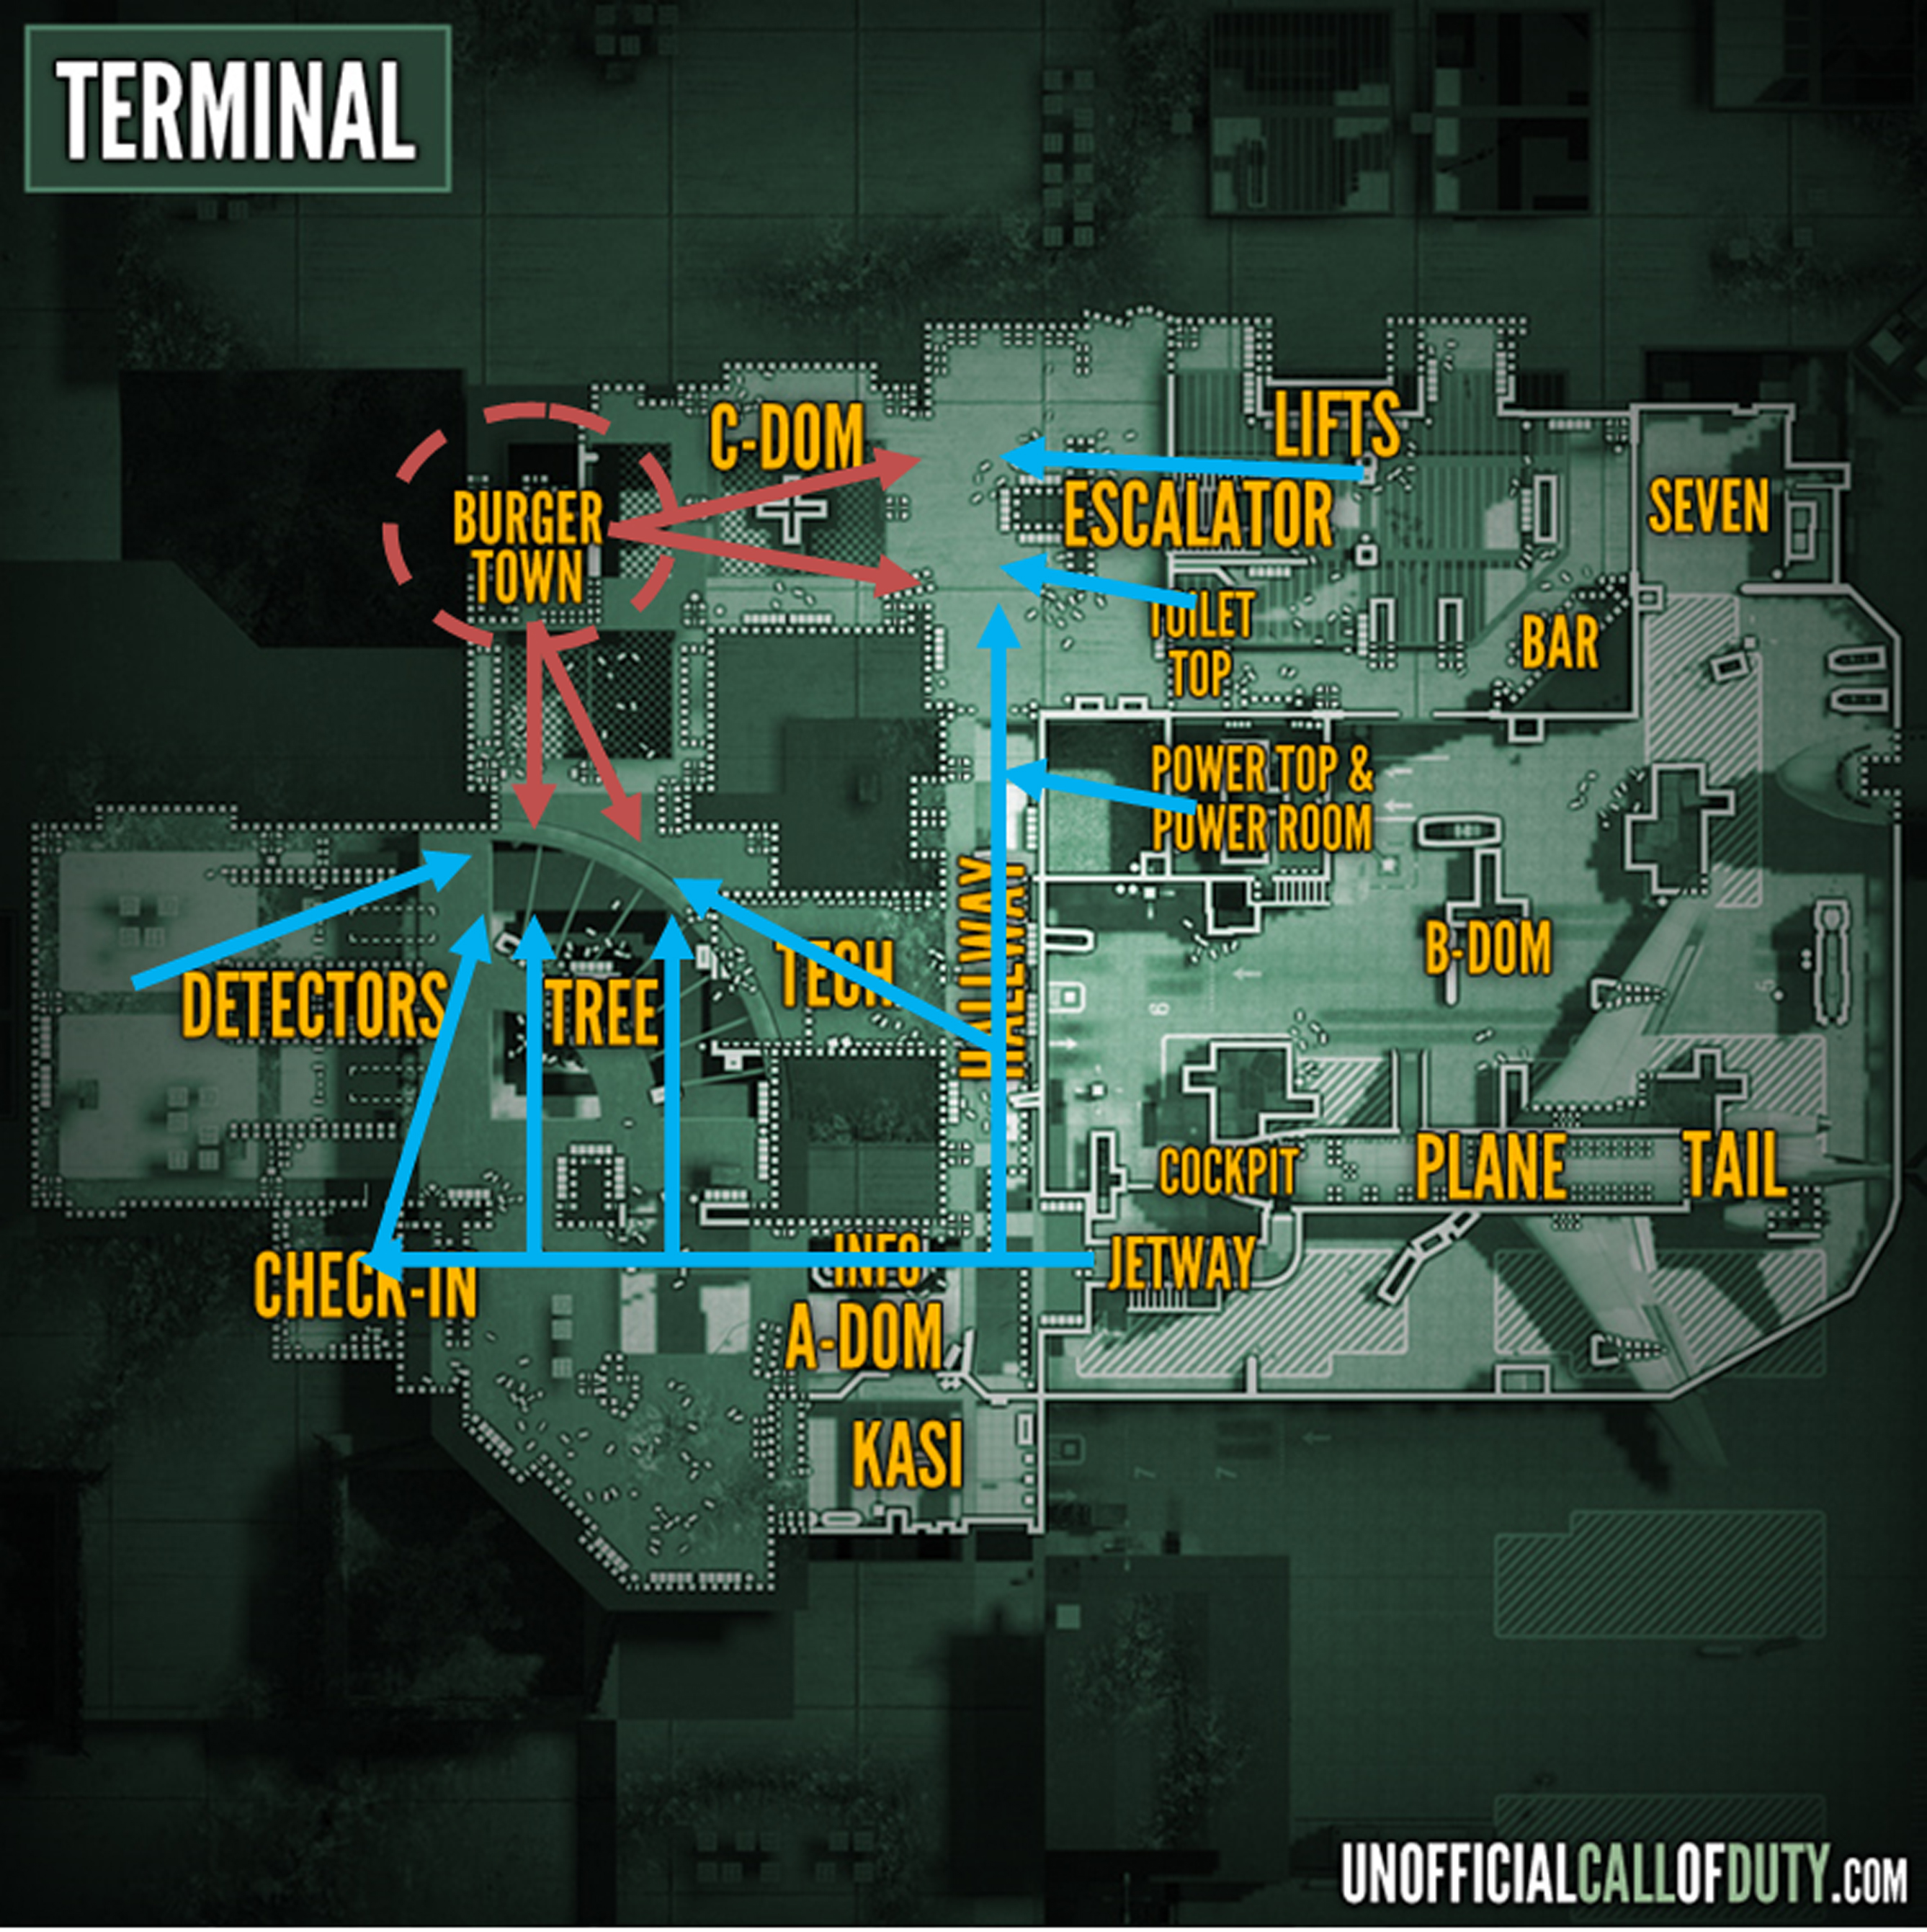 Playing through the Terminal: Mixed Realism and Air Travel